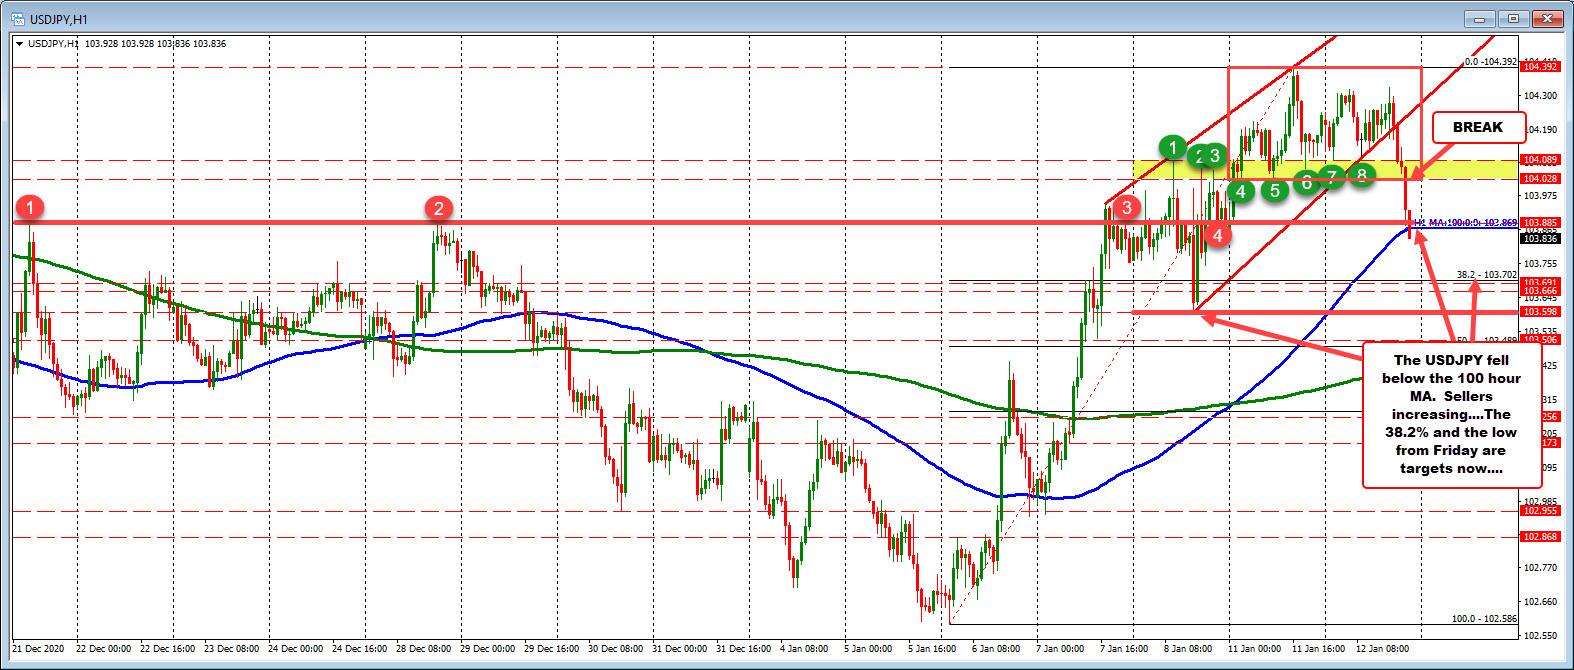 USD cracks lower and runs to and through the 100 hour MA